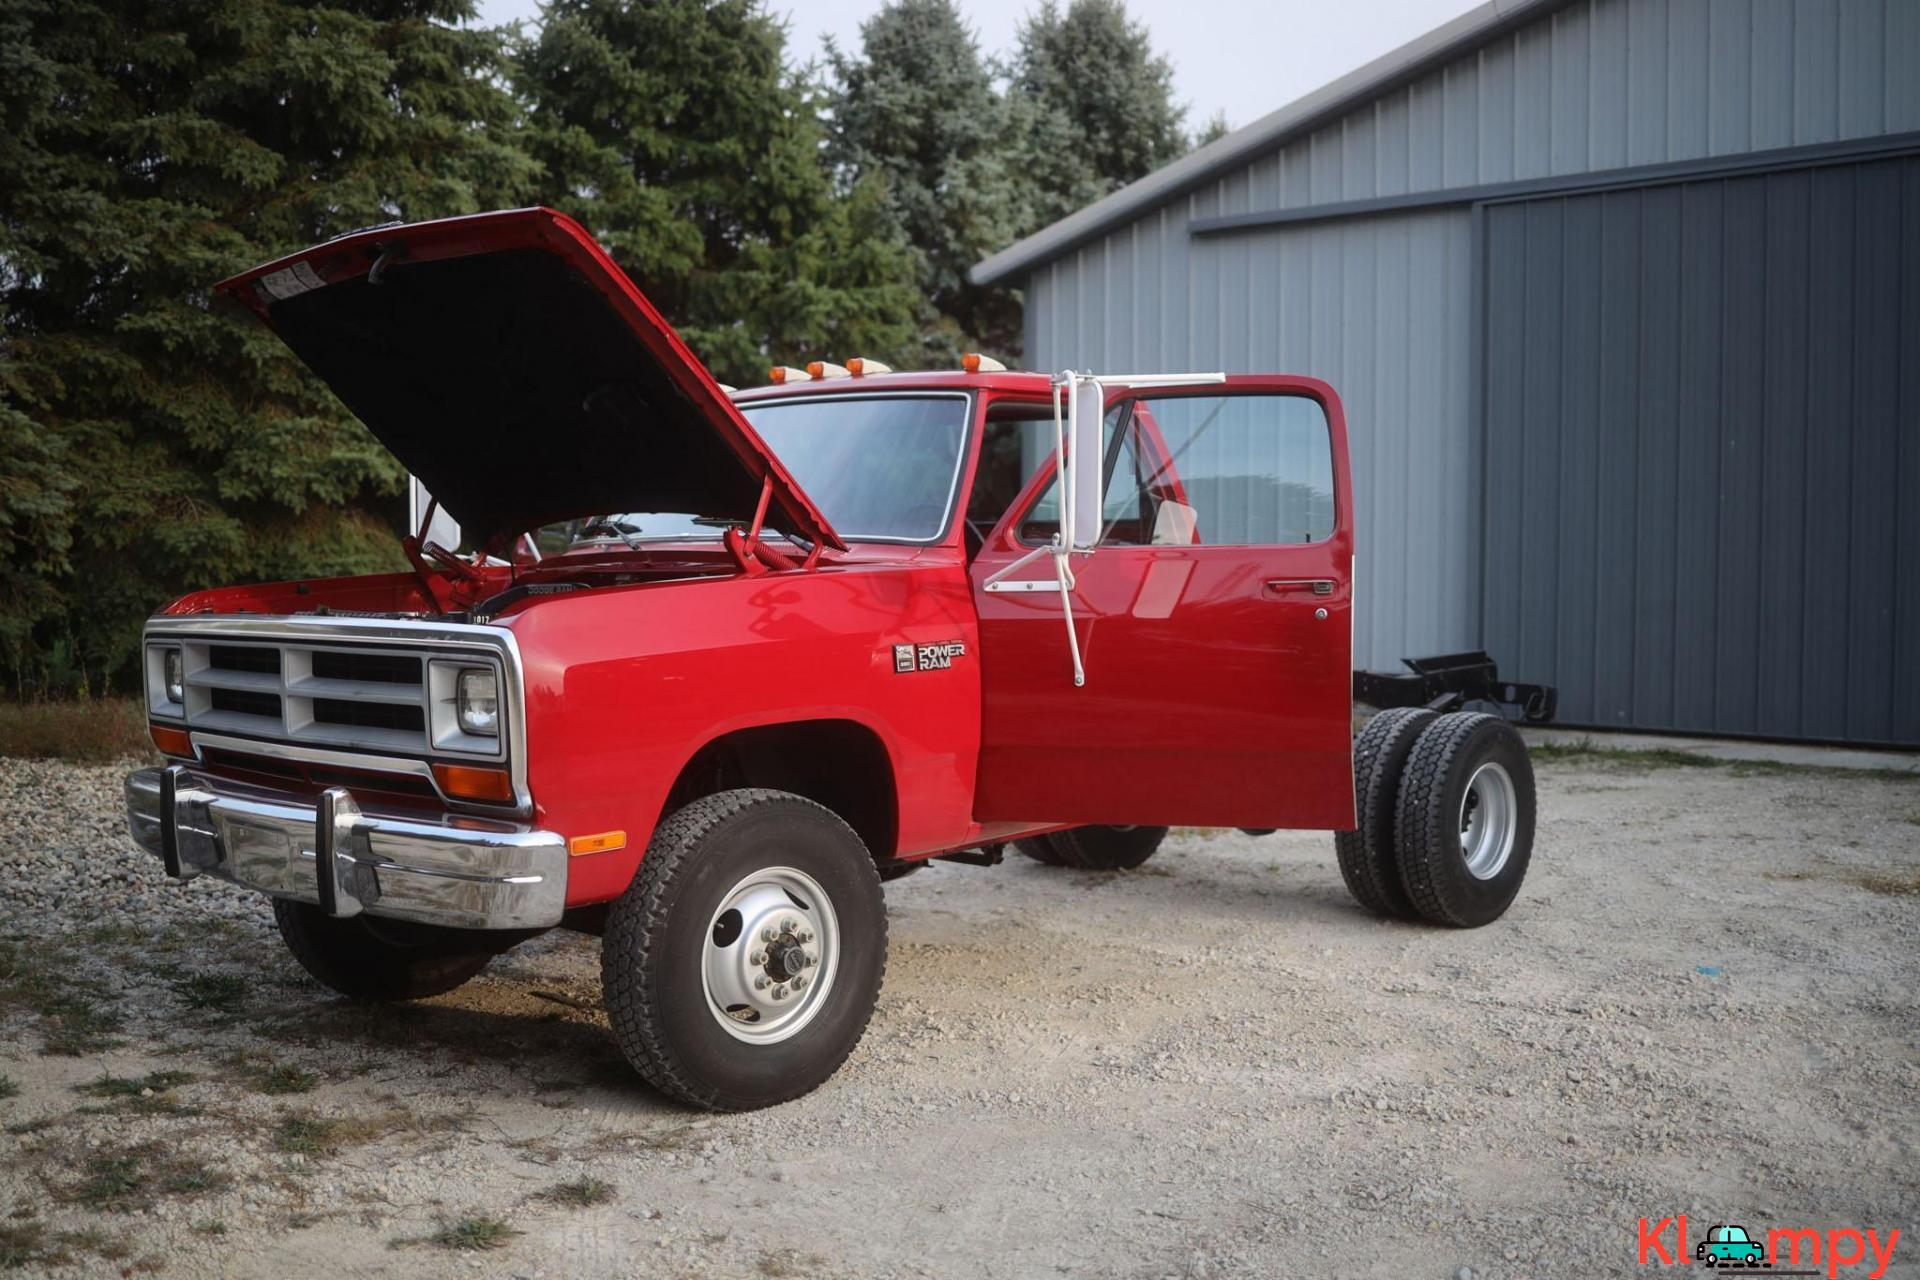 1989 Dodge Power Ram W350 4×4 Truck - 7/20